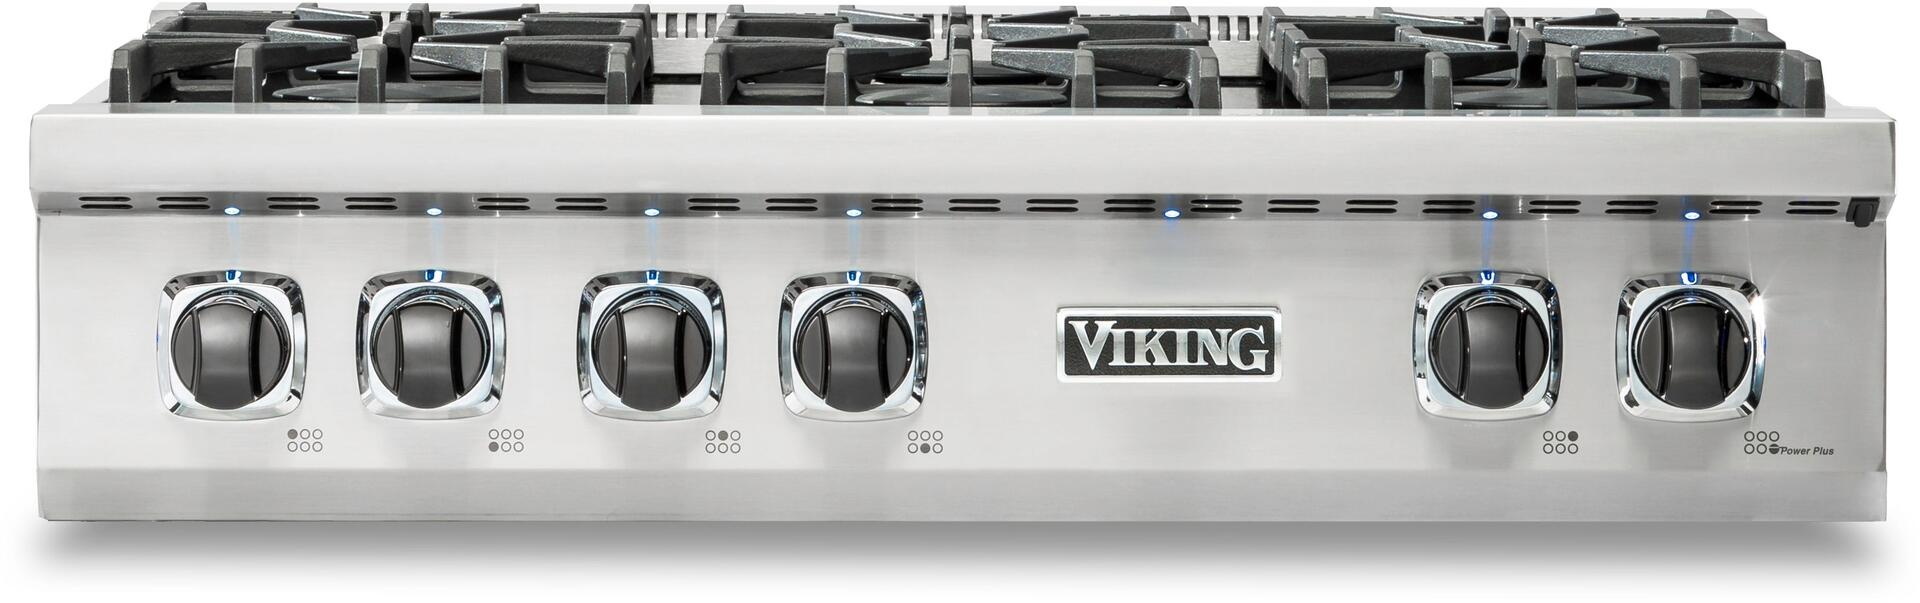 viking vrt5366bss 36 inch professional 5 series stainless steel gas rh appliancesconnection com Professional Stoves for Home Use viking professional stove parts